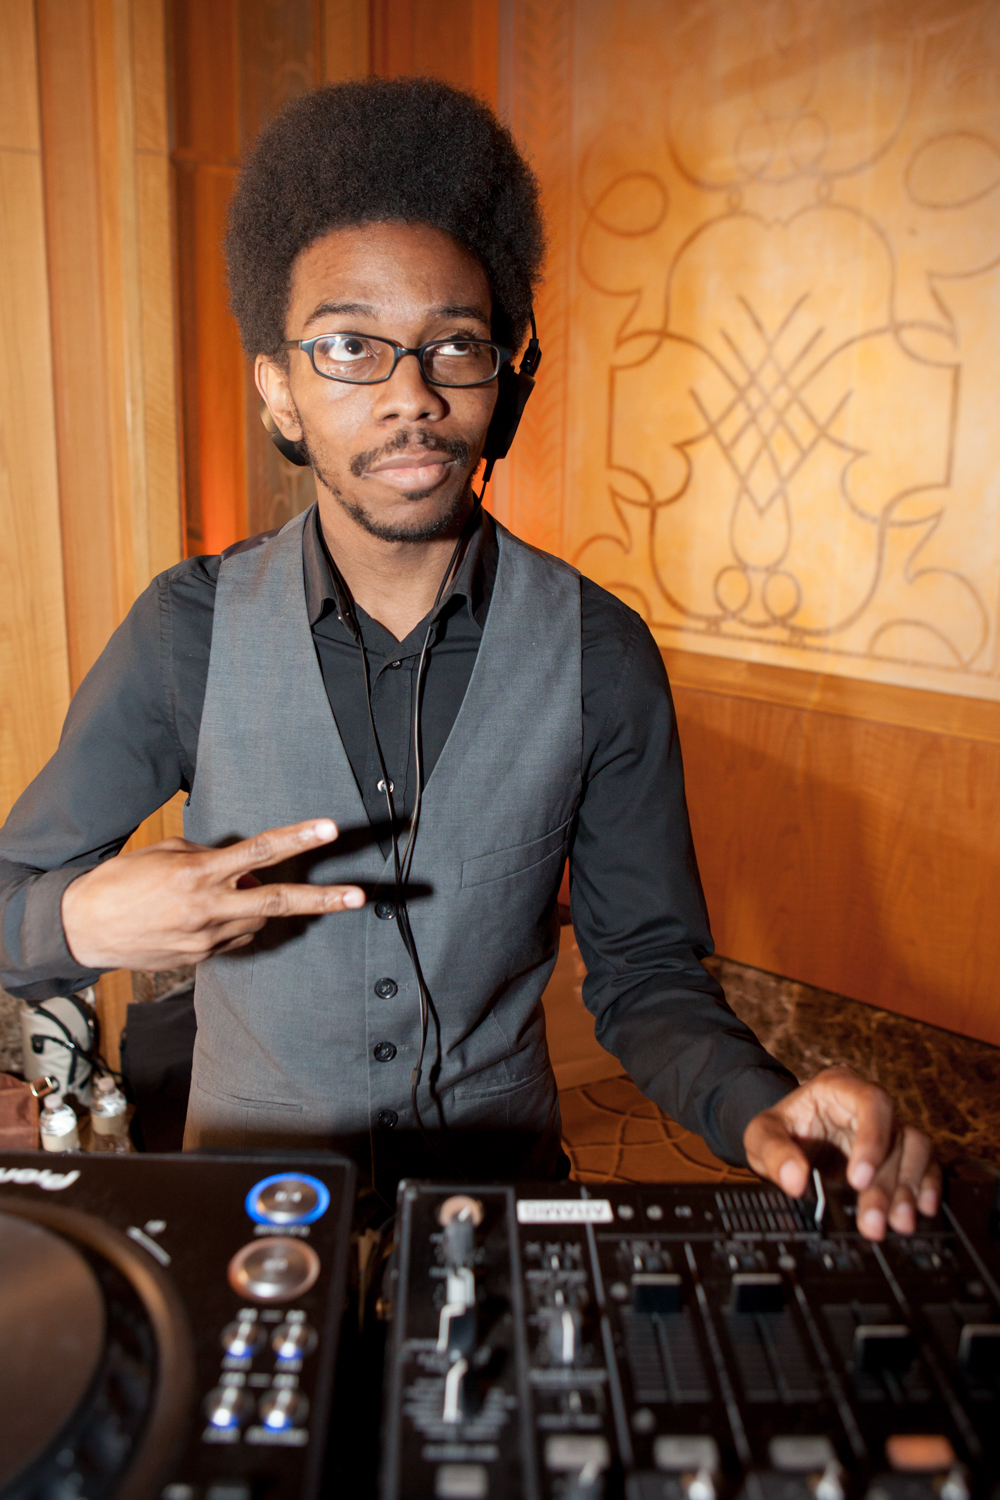 corporate event dj services chicago